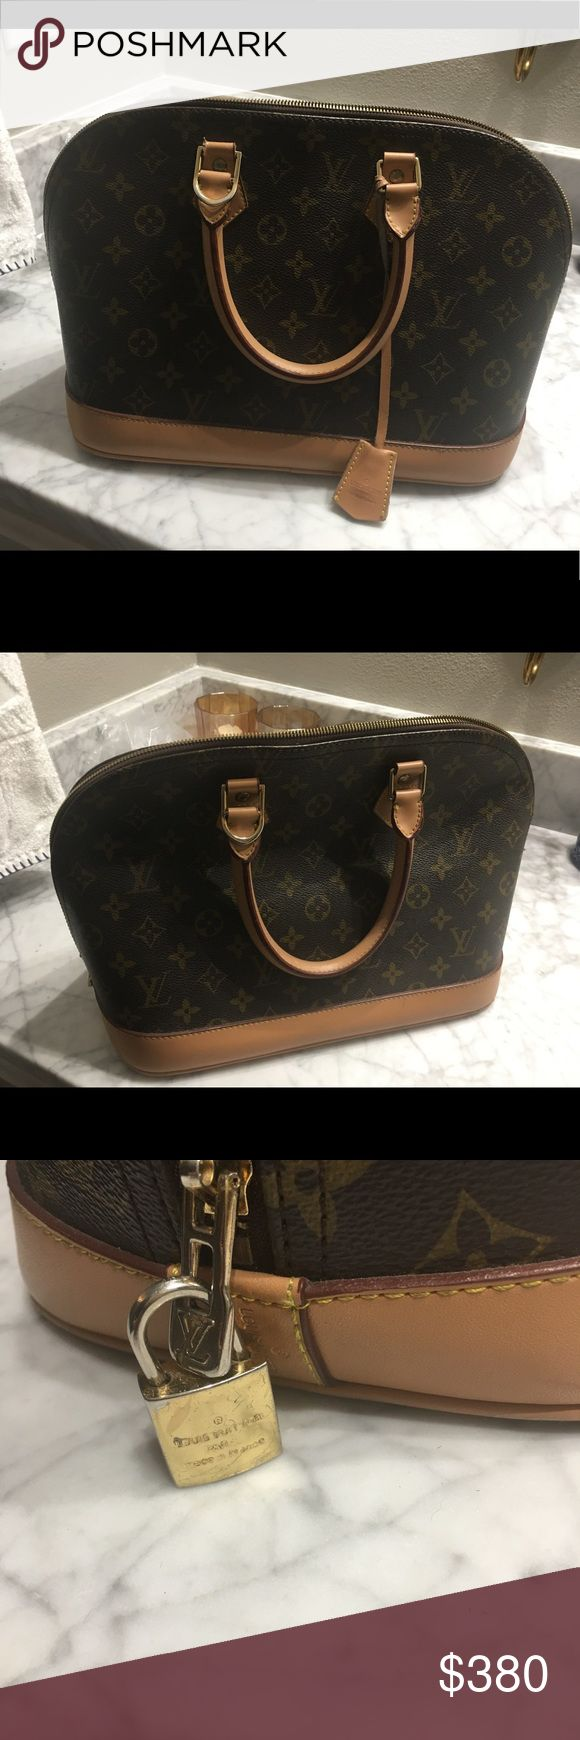 Louis vouitton handbag Louis vouitton handbag with serial number. In good condition. Does have some pen marks on the inside of bag. Louis Vuitton Bags Satchels